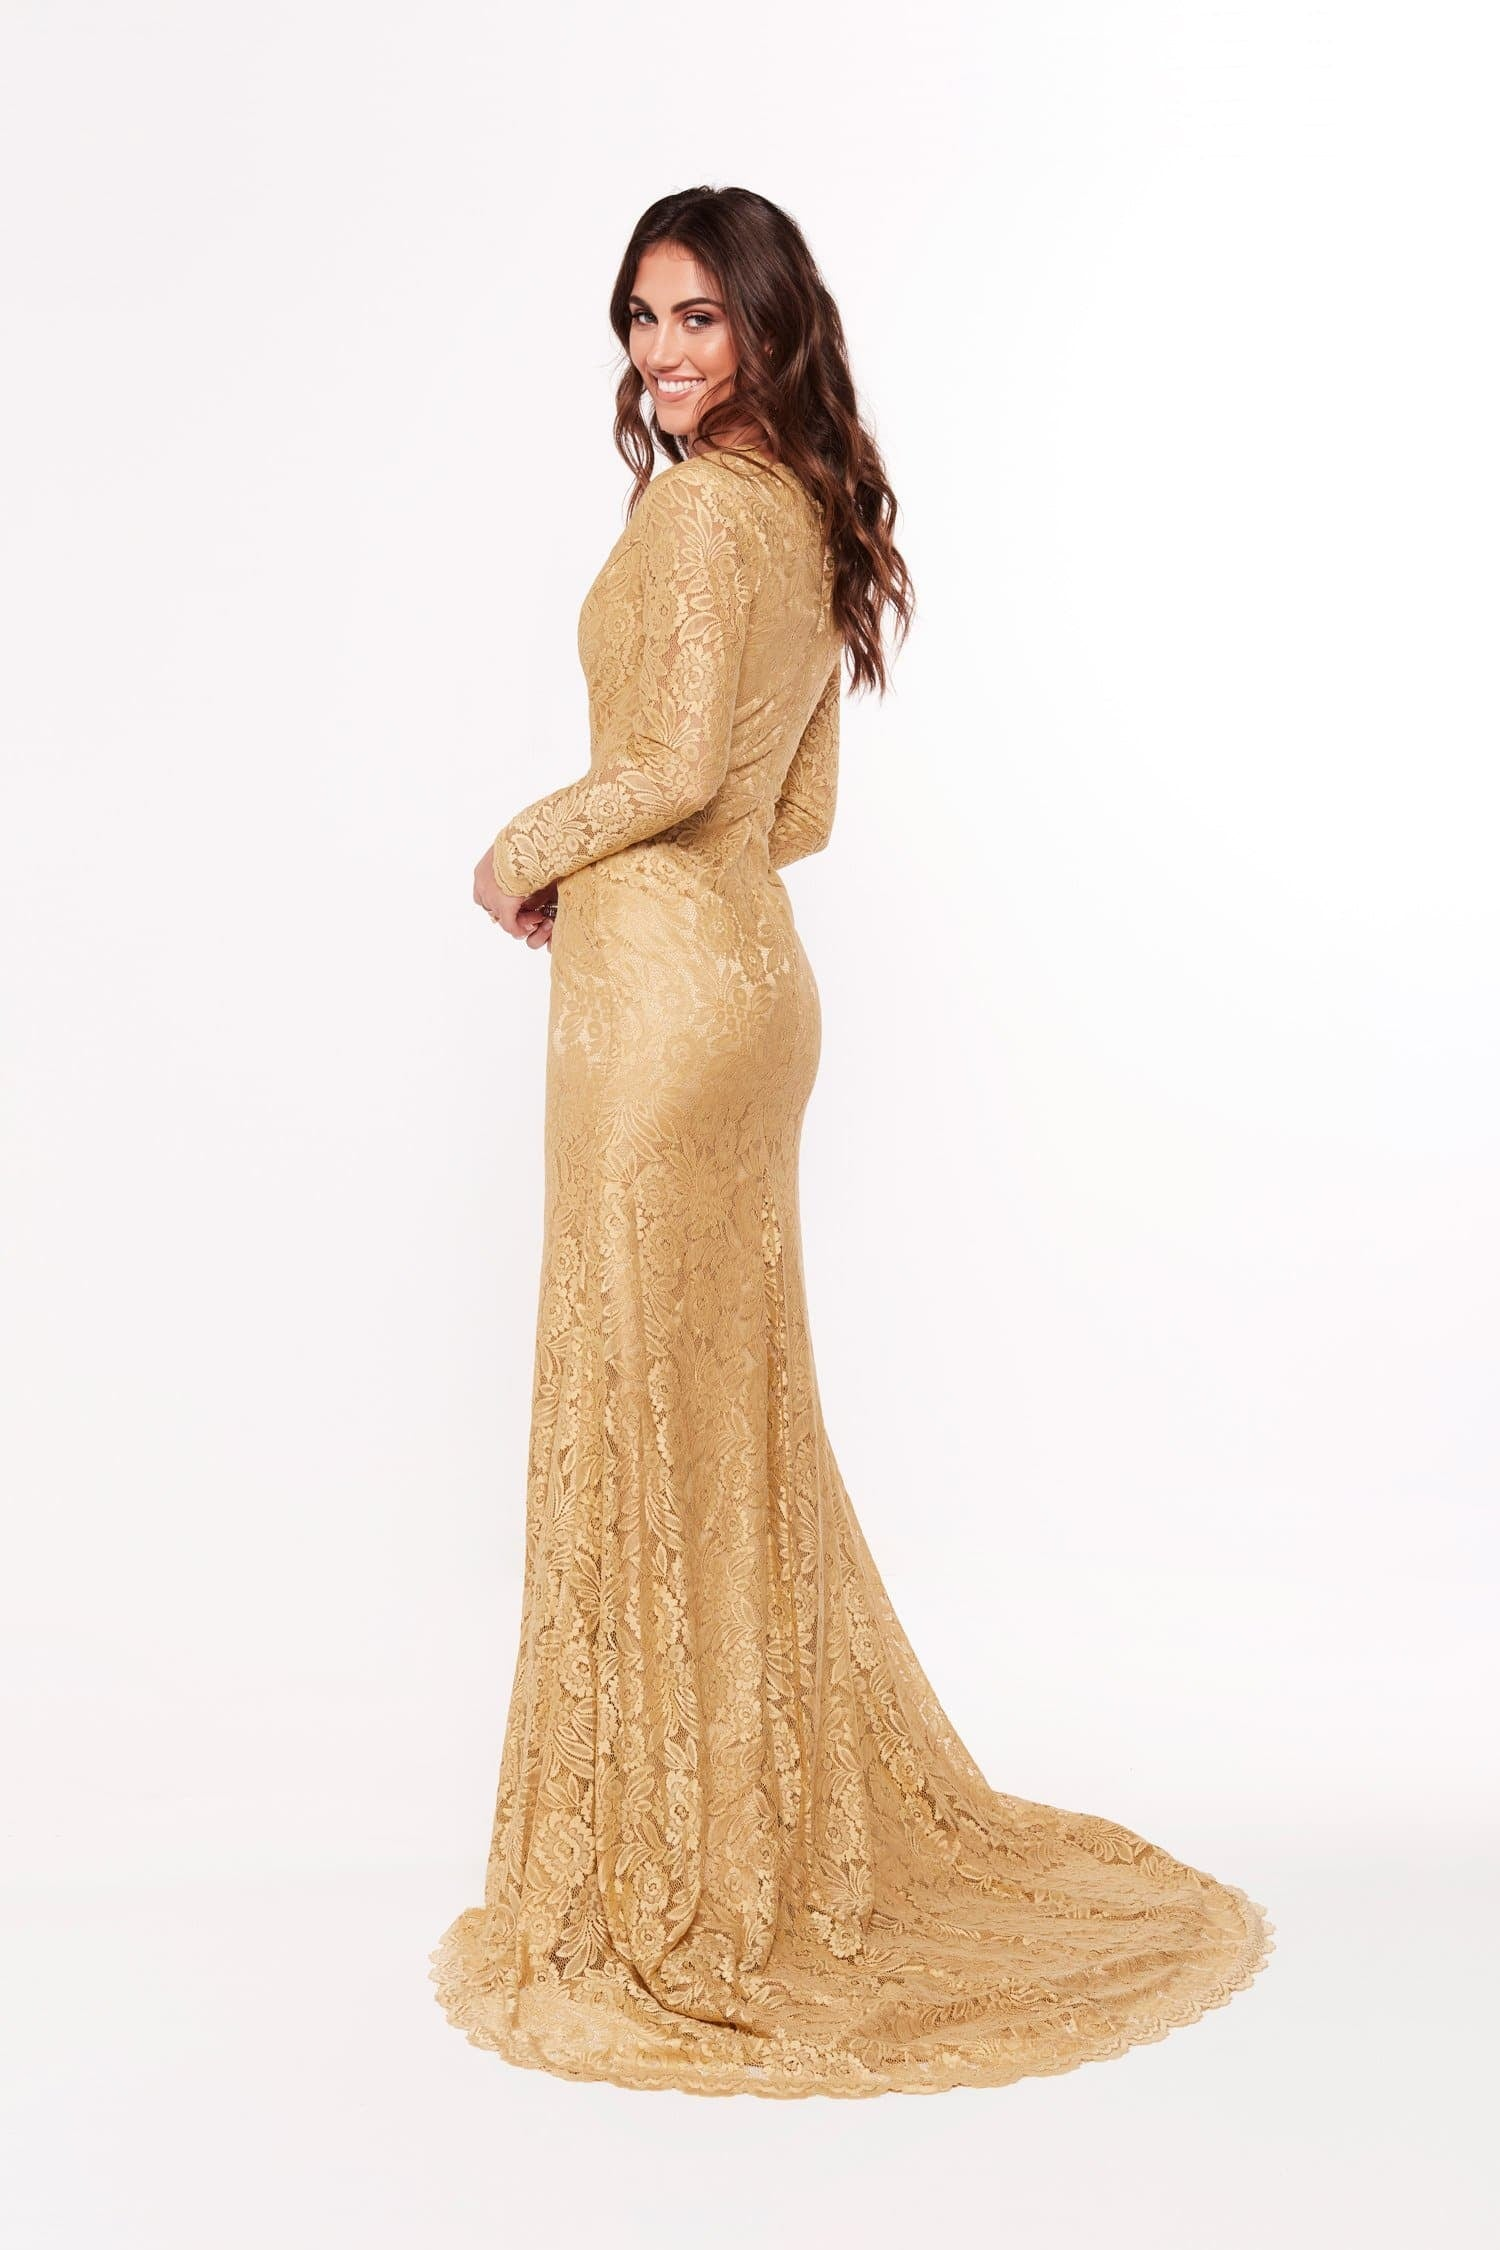 A&N Maggie - Gold Lace Gown with Long Sleeves – A&N Luxe Label